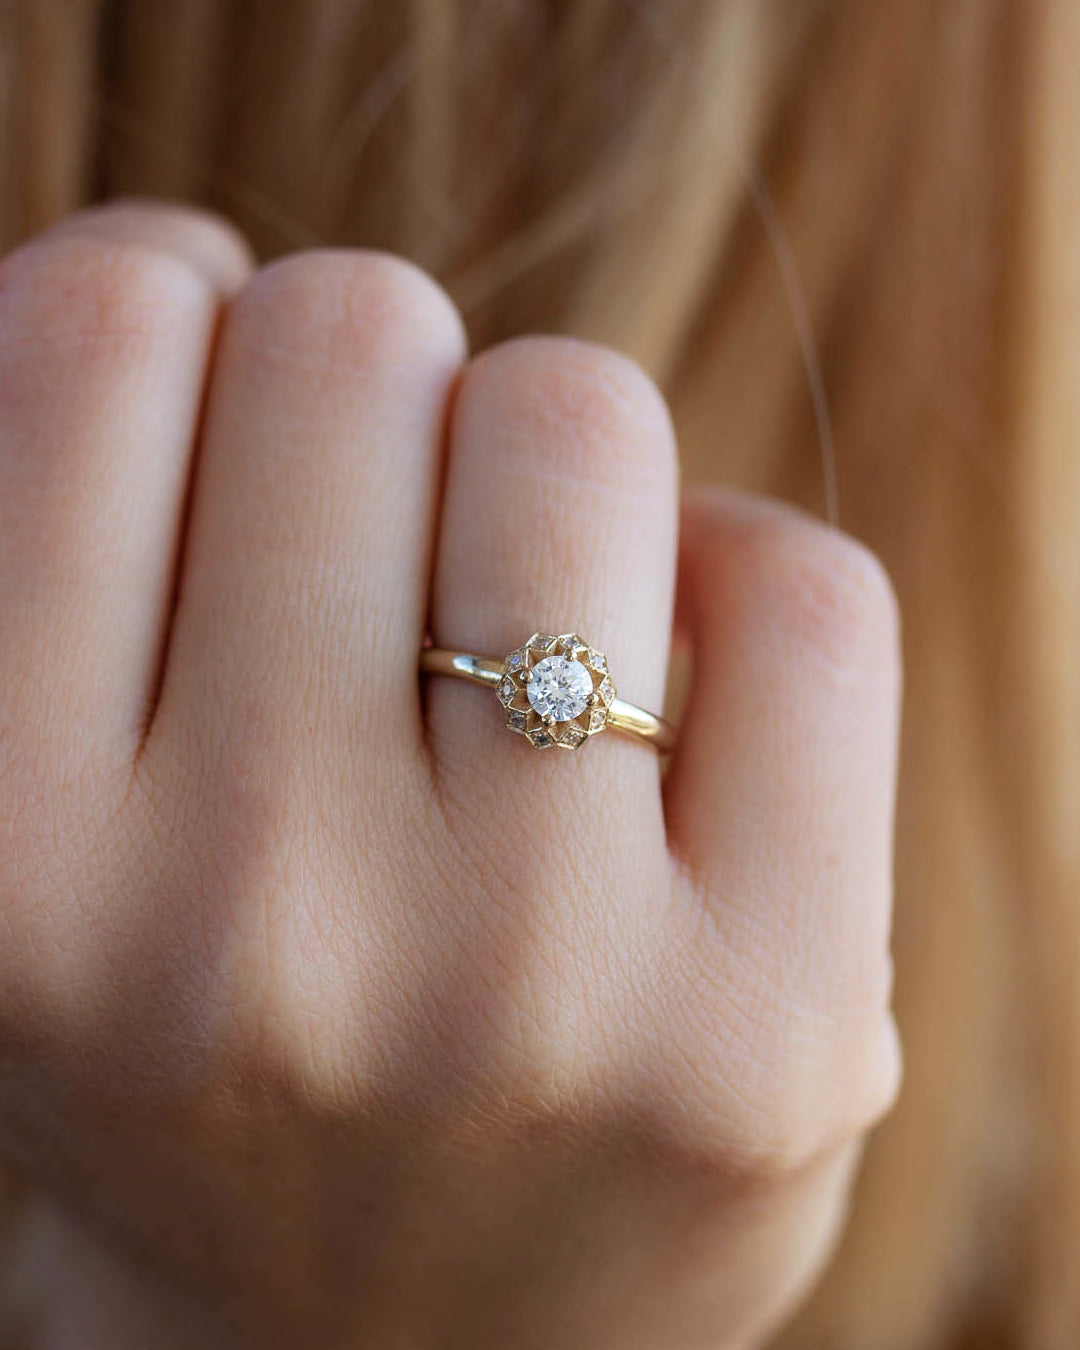 A delicate 14k yellow gold engagement ring, set with a center brilliant cut white diamond and smaller diamonds around it, in the shape of a geometric flower.